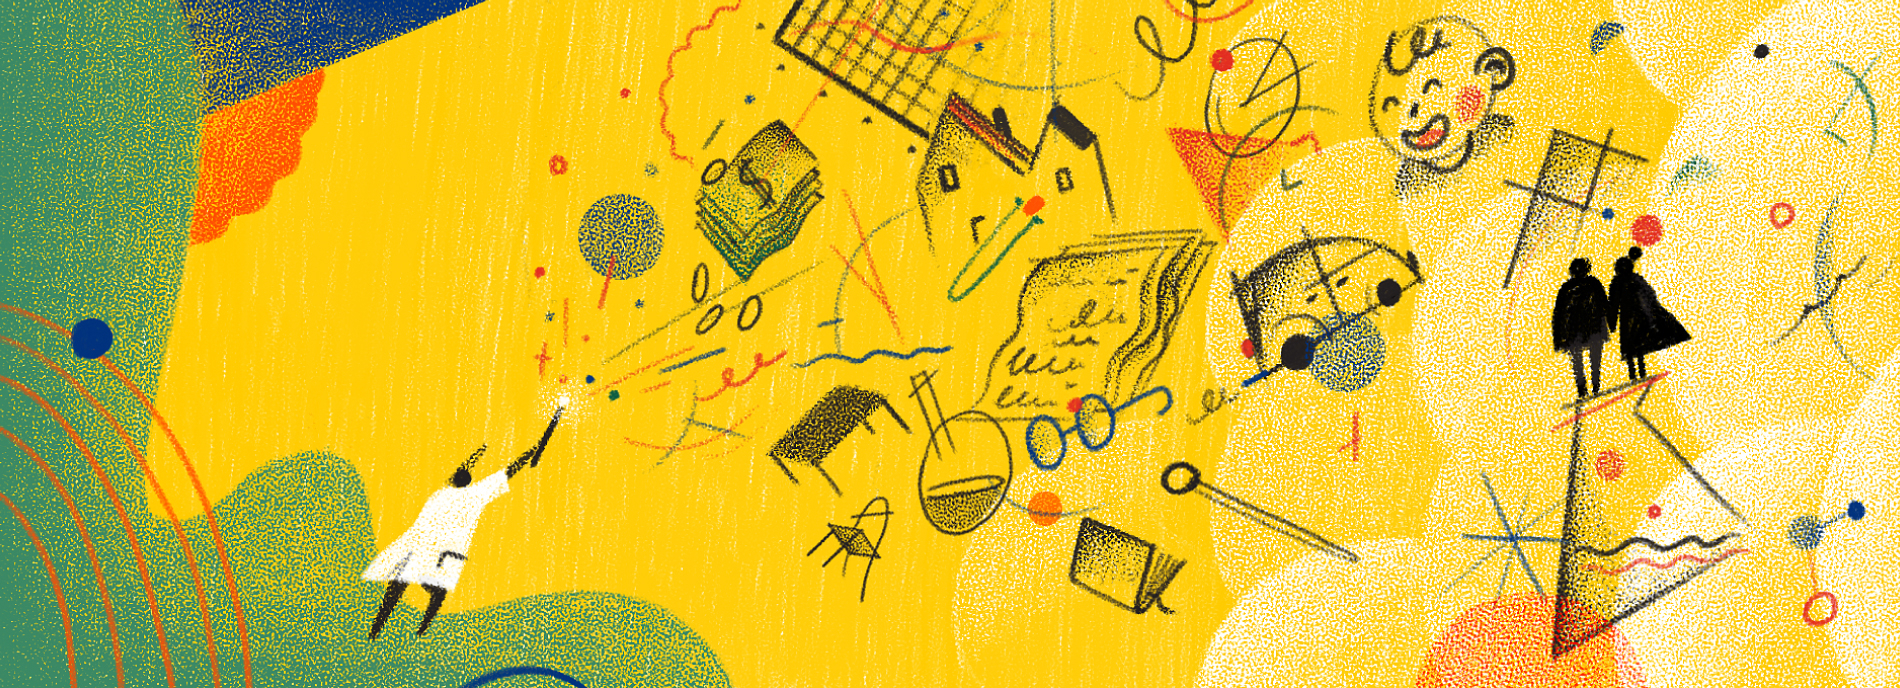 scientist orchestrates the chaos of work and life